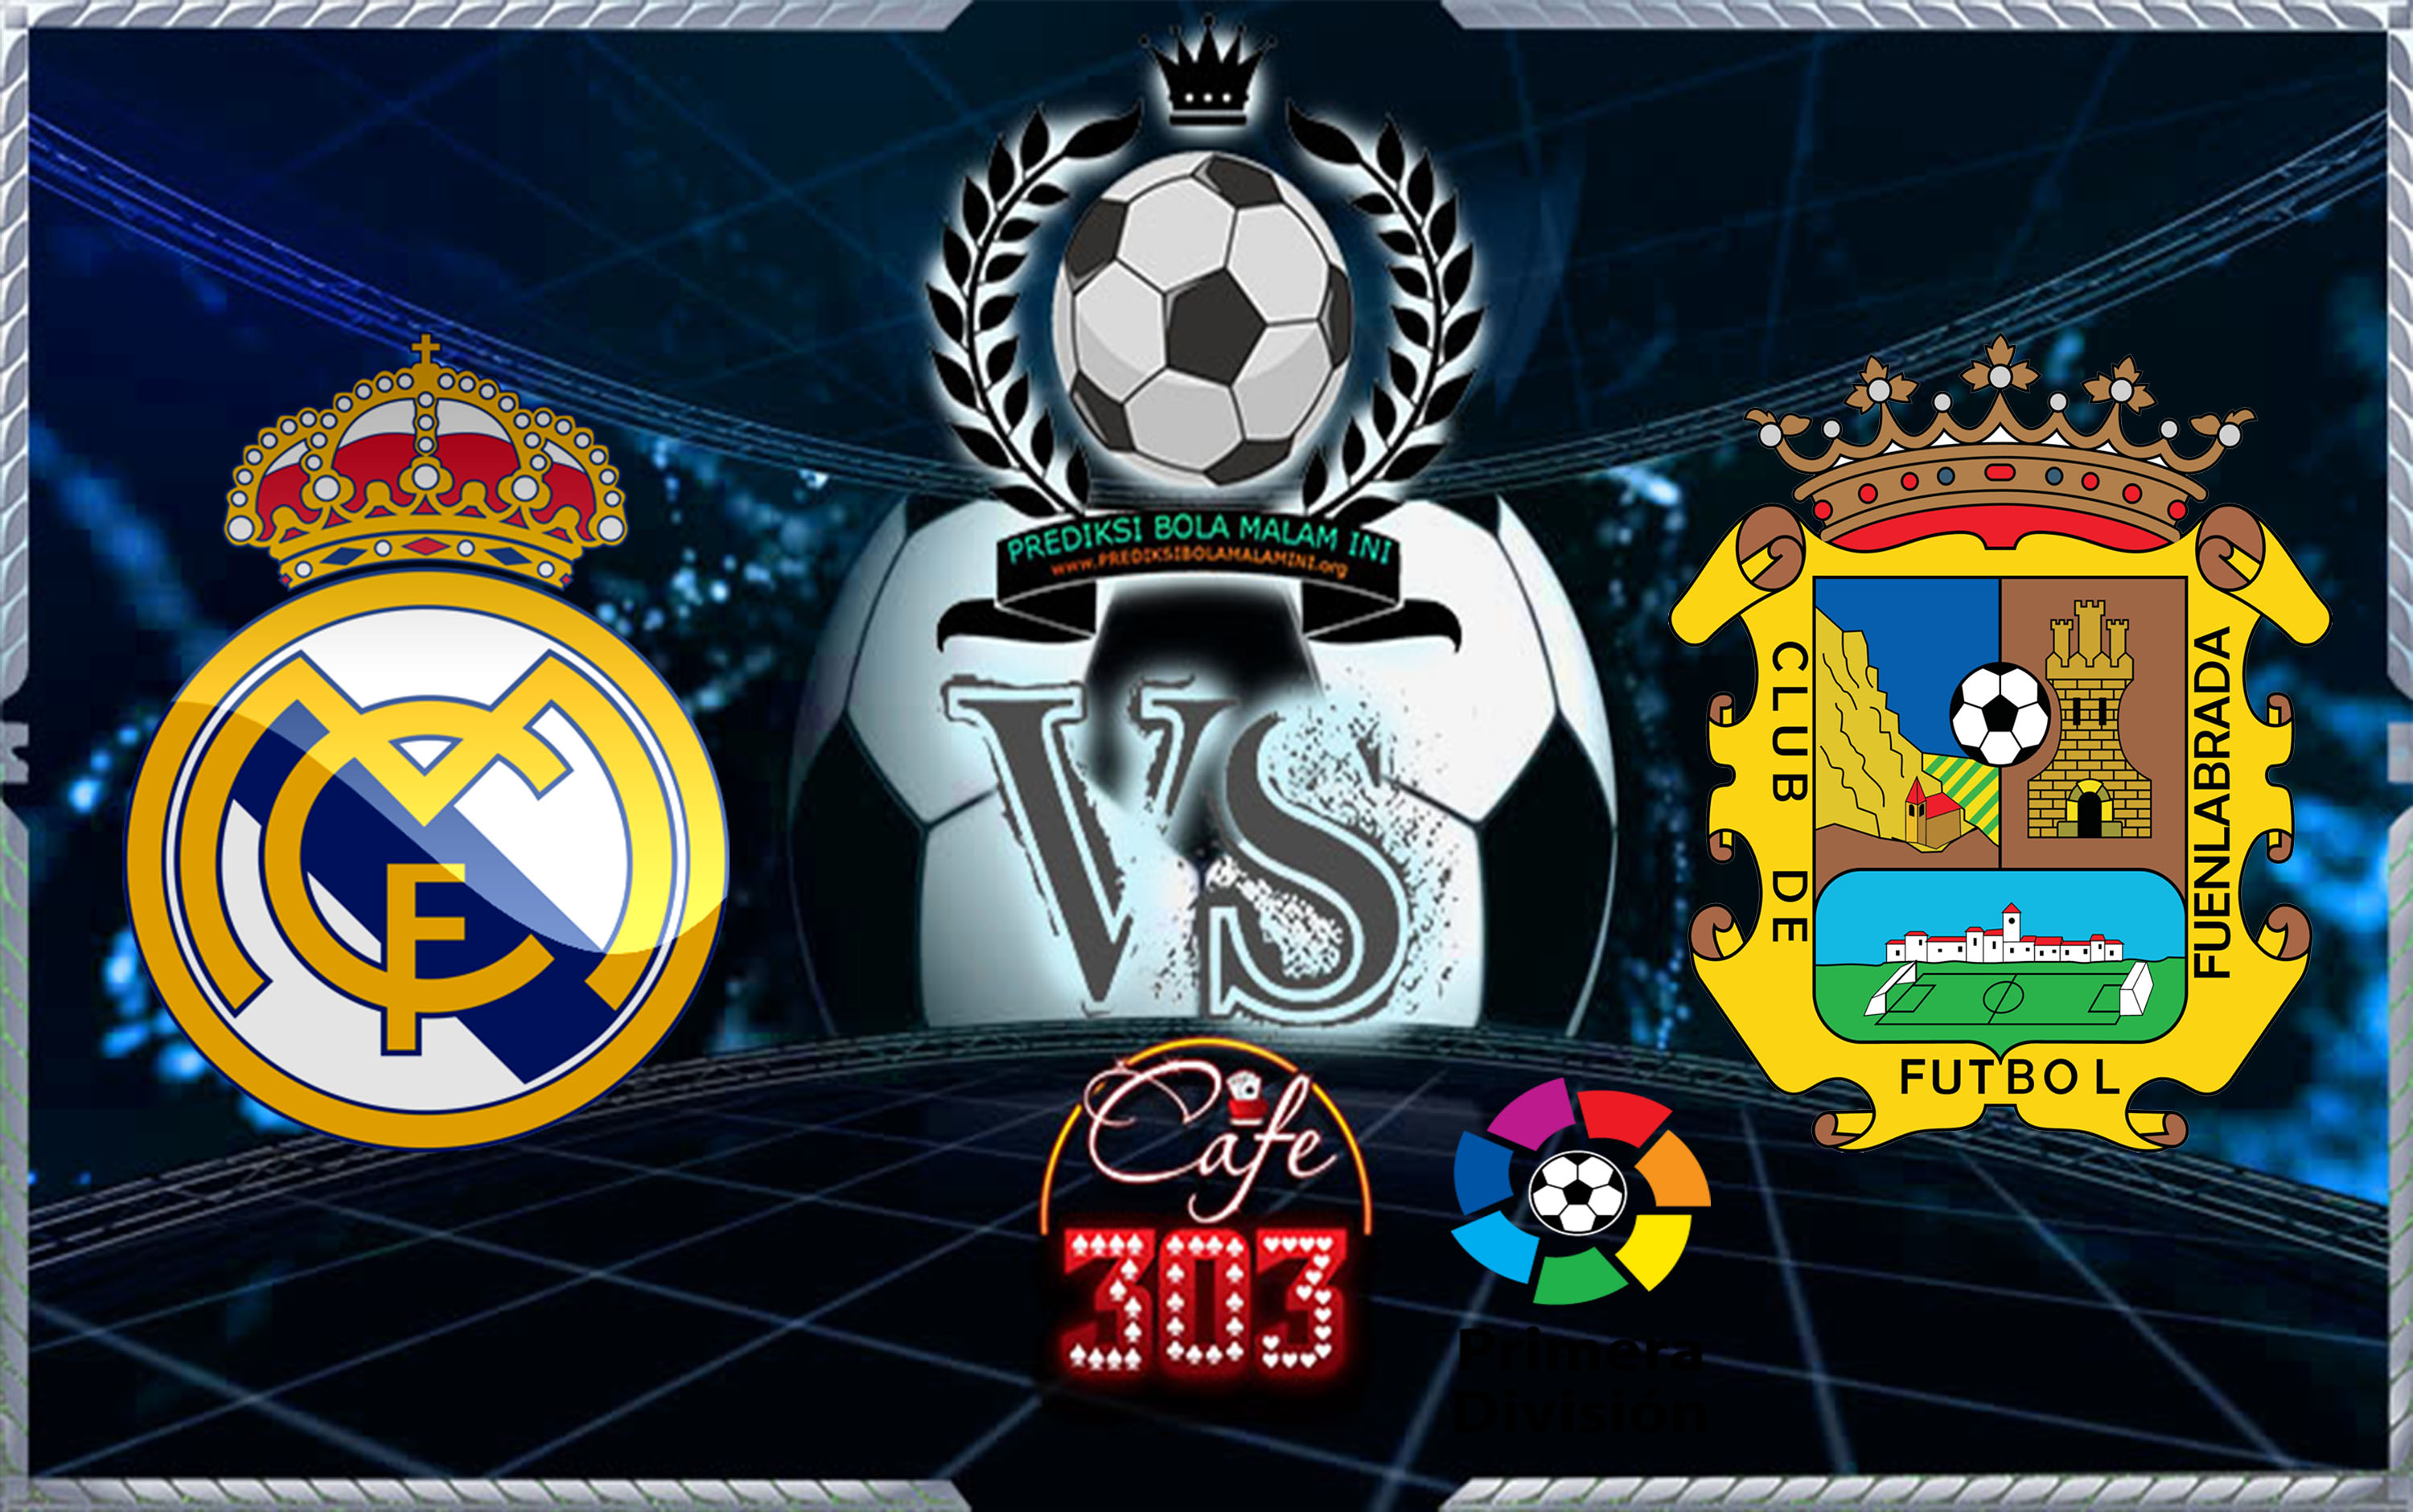 Sepatu Prediksi REAL MADRID Vs FUENLABRADA 29 November 2017 &quot;width =&quot; 640 &quot;height =&quot; 401 &quot;/&gt; </p> <p> <span style=